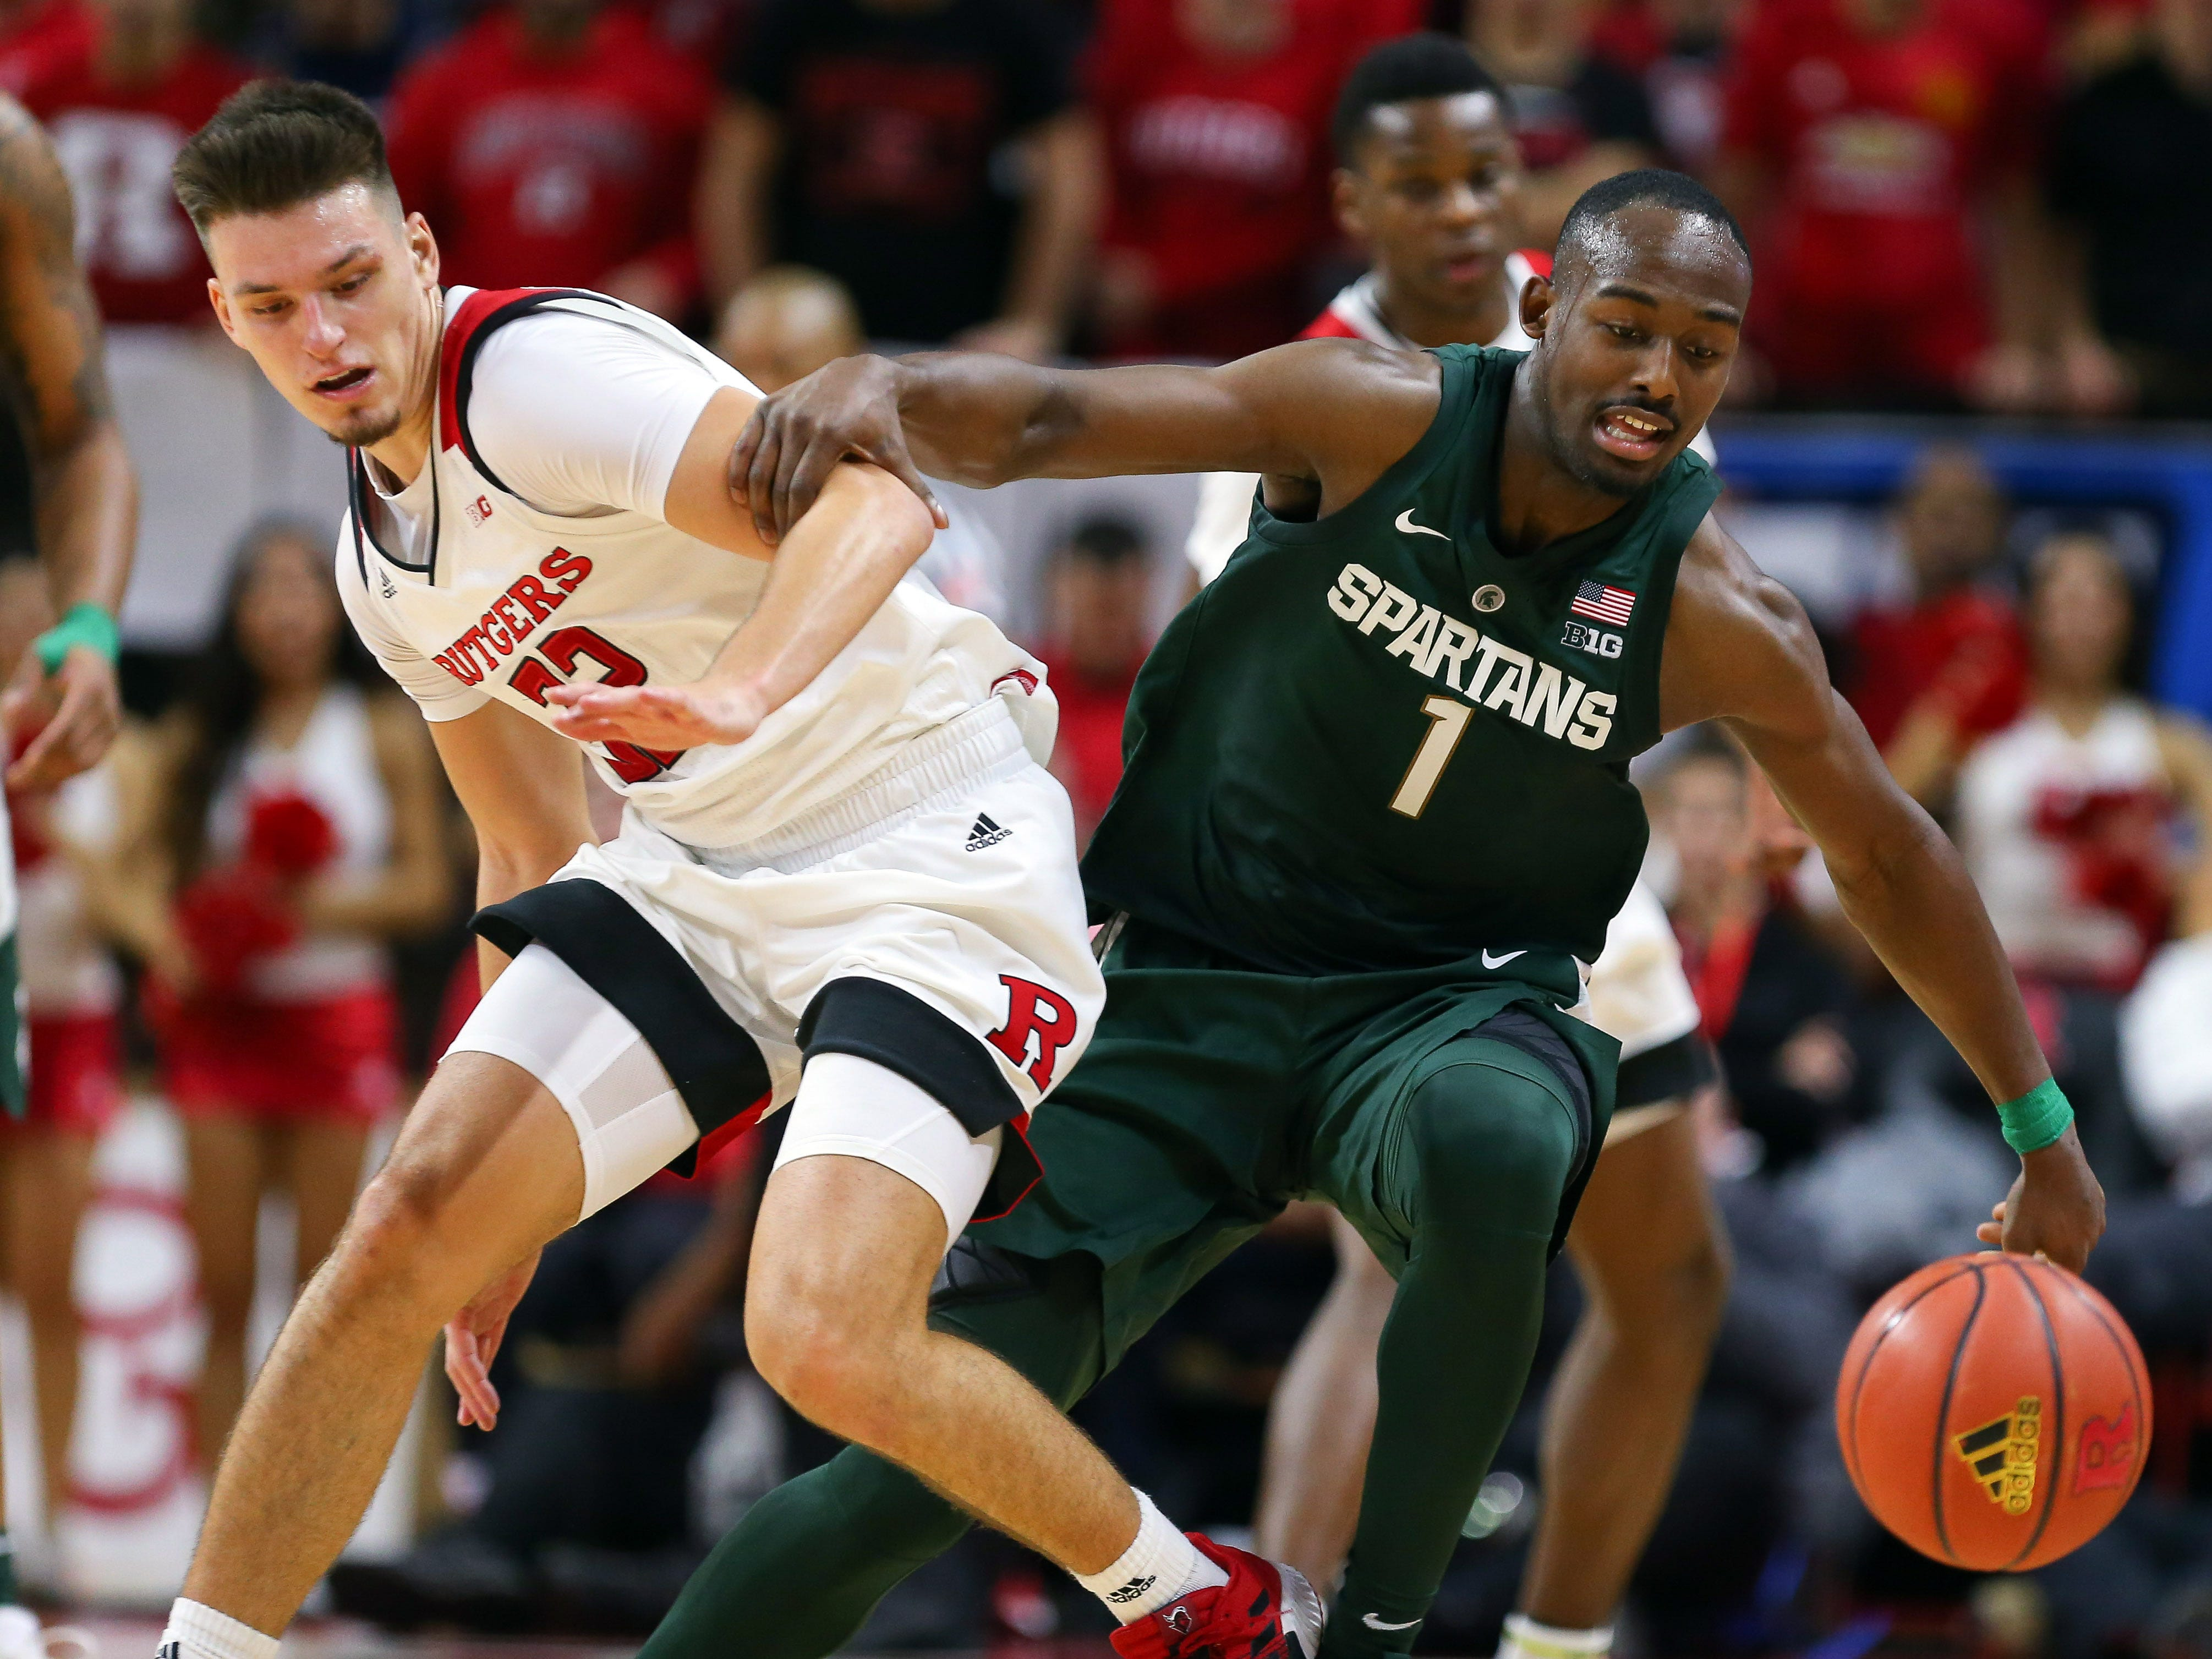 Michigan State Spartans guard Joshua Langford (1) chases a loose ball against Rutgers Scarlet Knights guard Peter Kiss (32) during the second half at Rutgers Athletic Center (RAC).